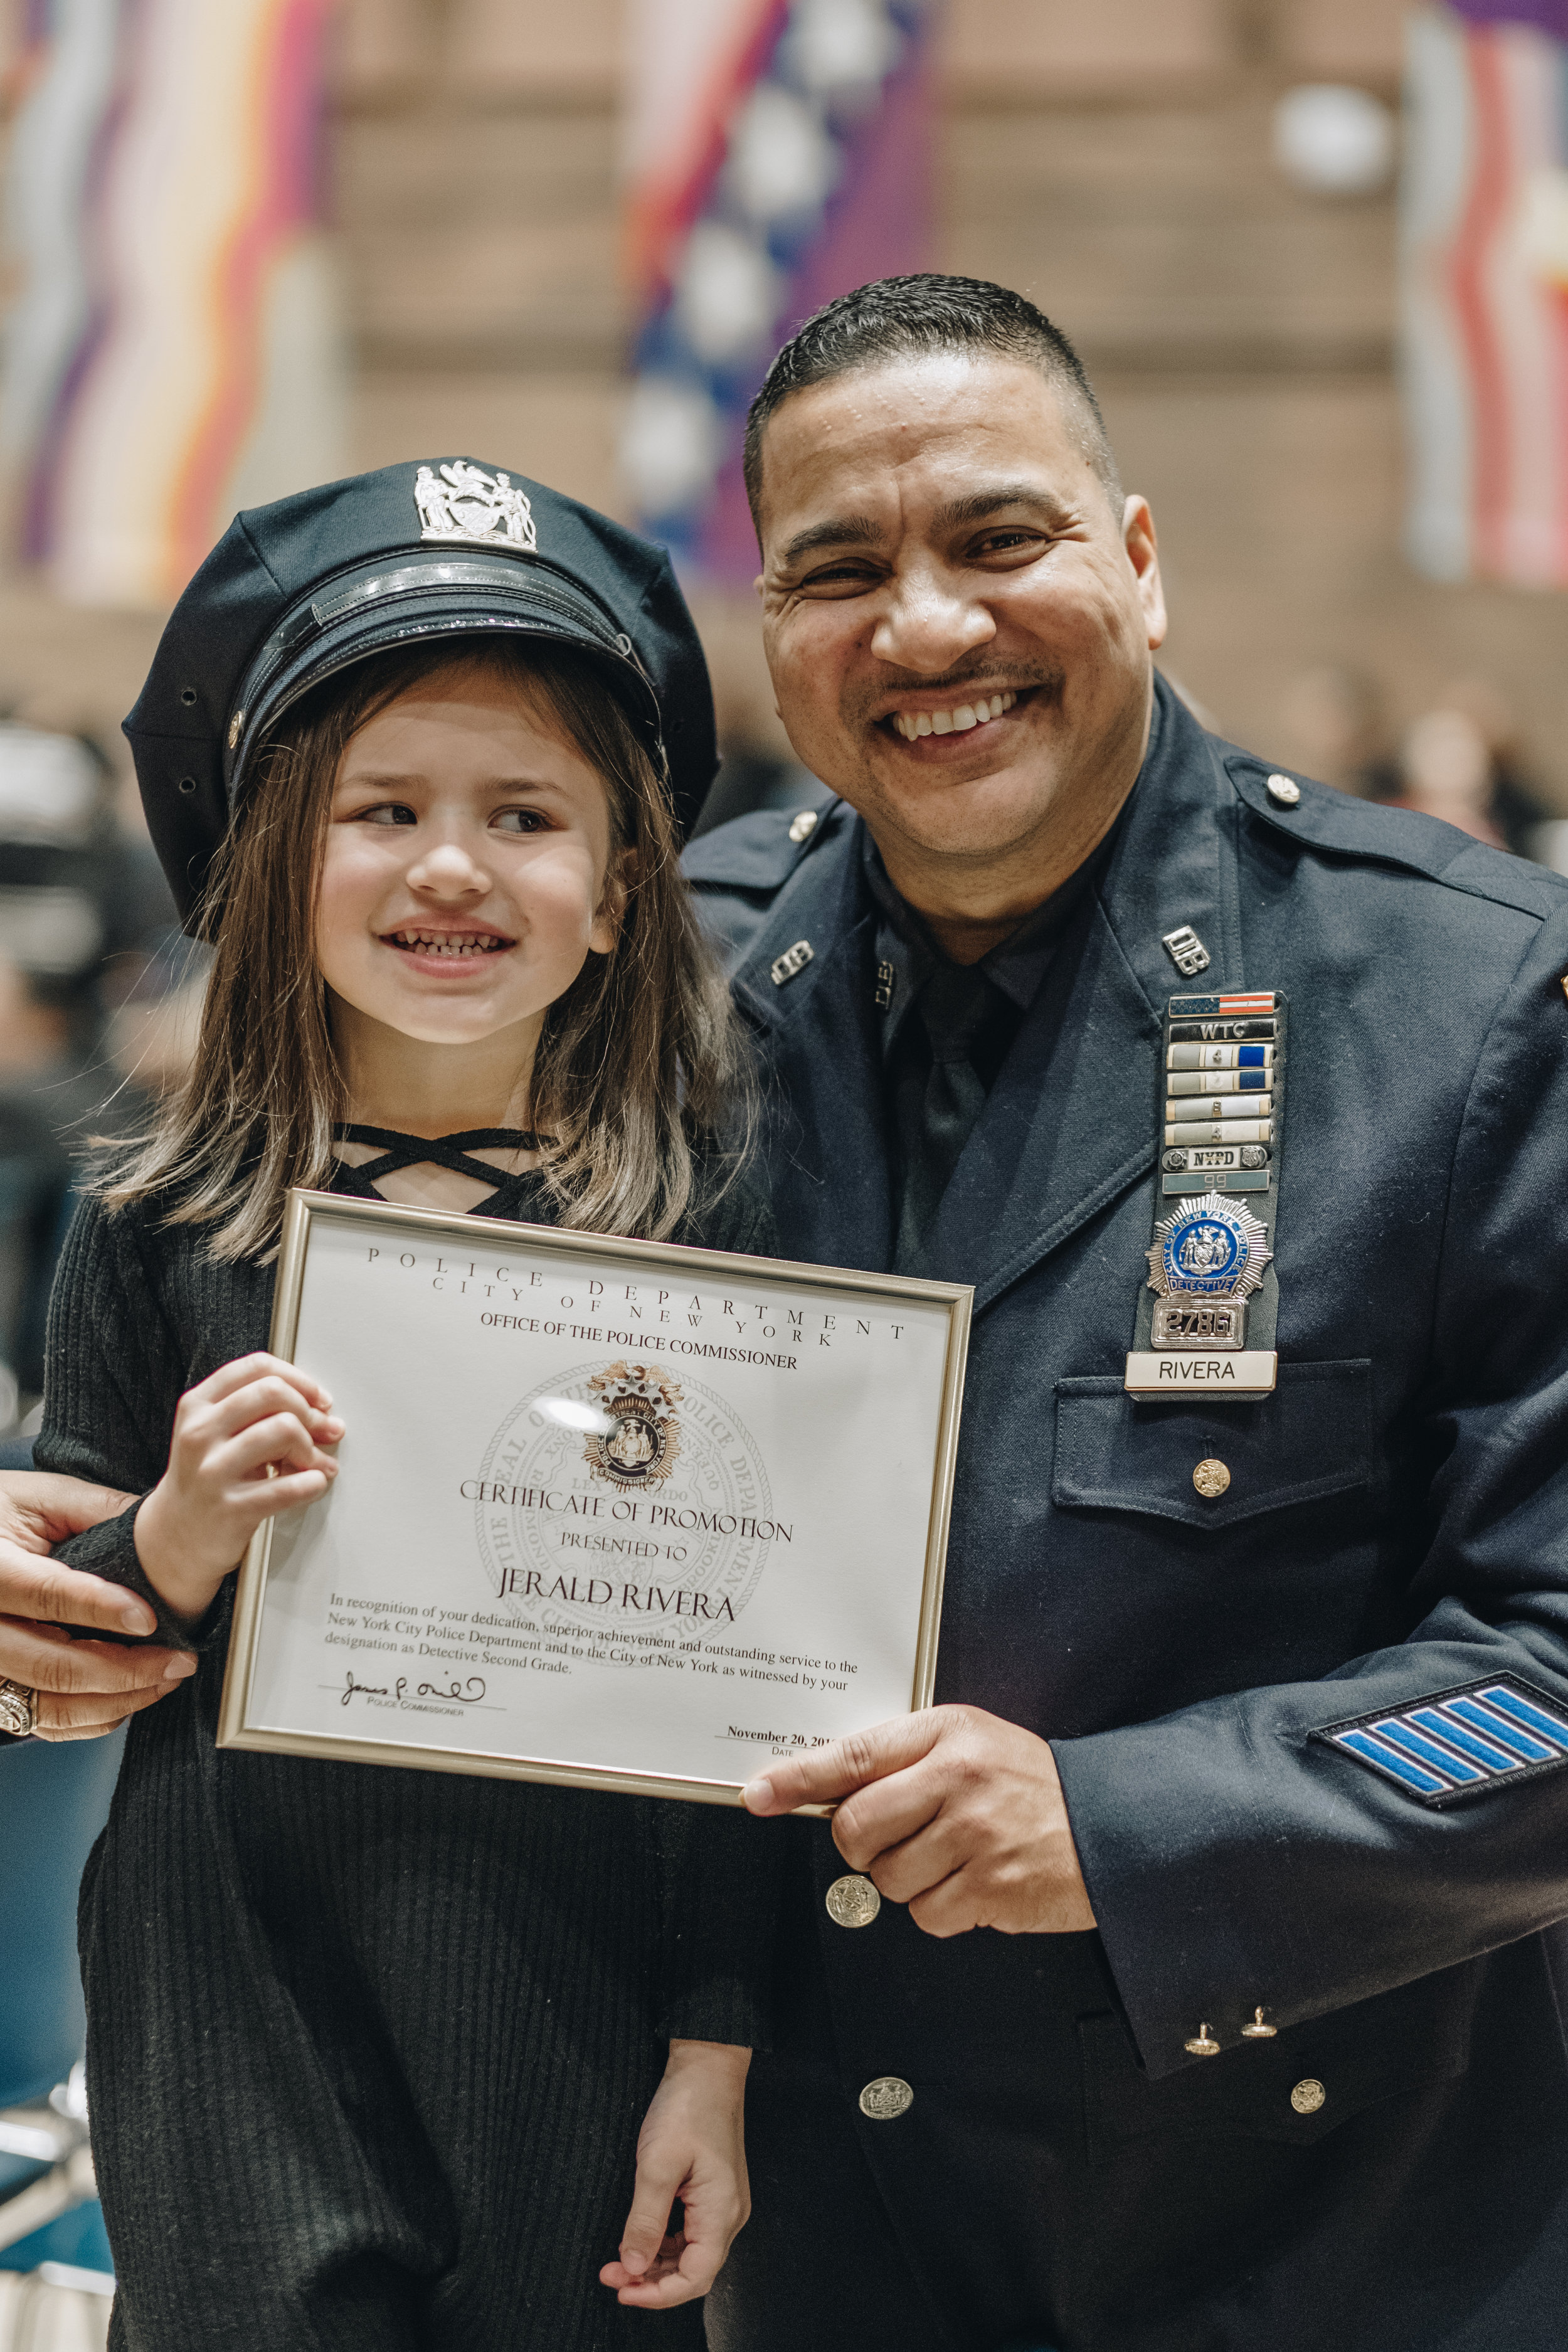 NYPD_Promotions-52.jpg